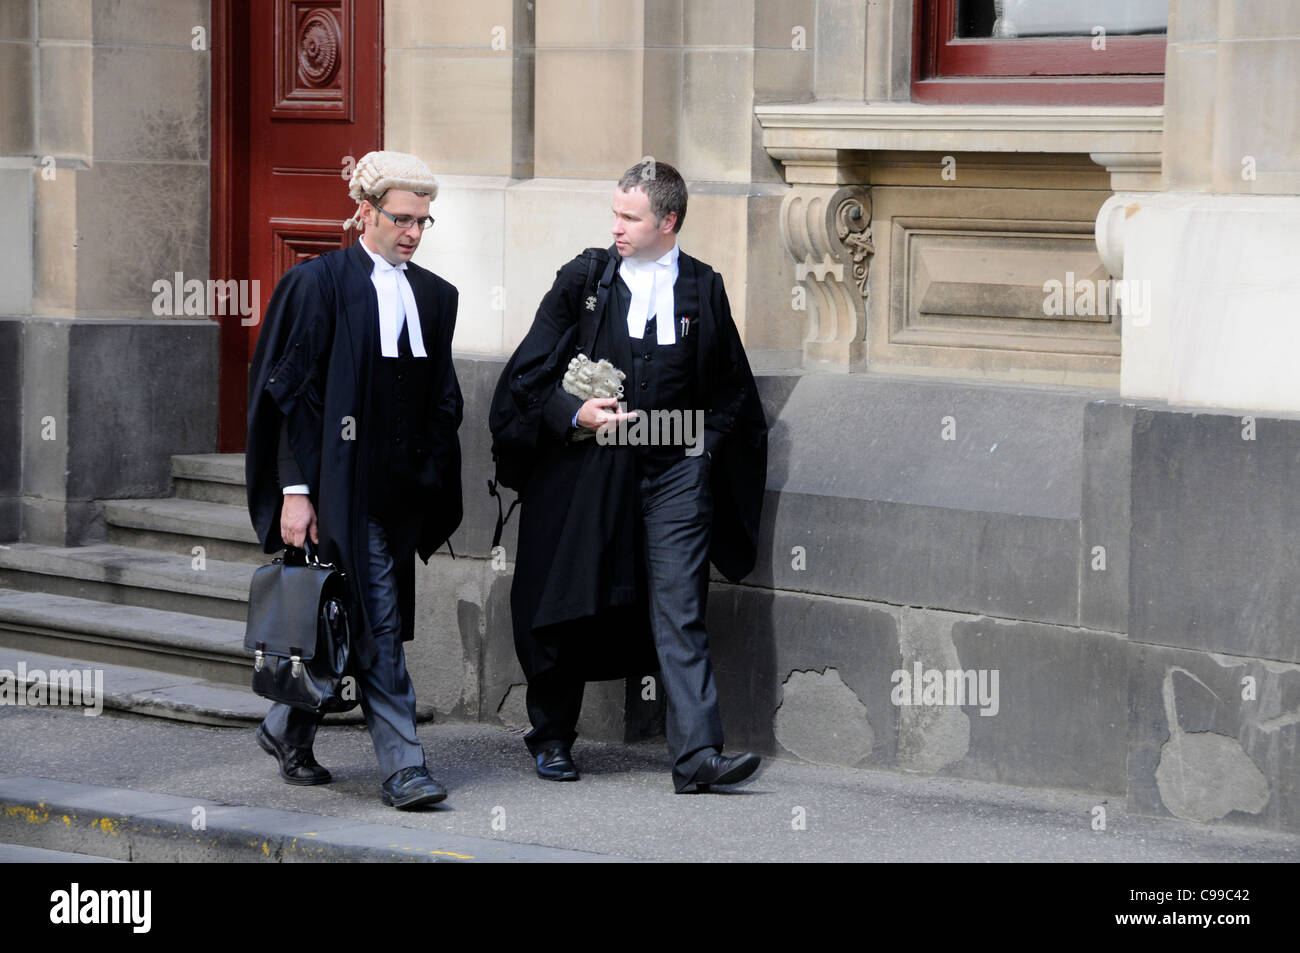 Two lawyers within the law courts in Melbourne,Australia - Stock Image